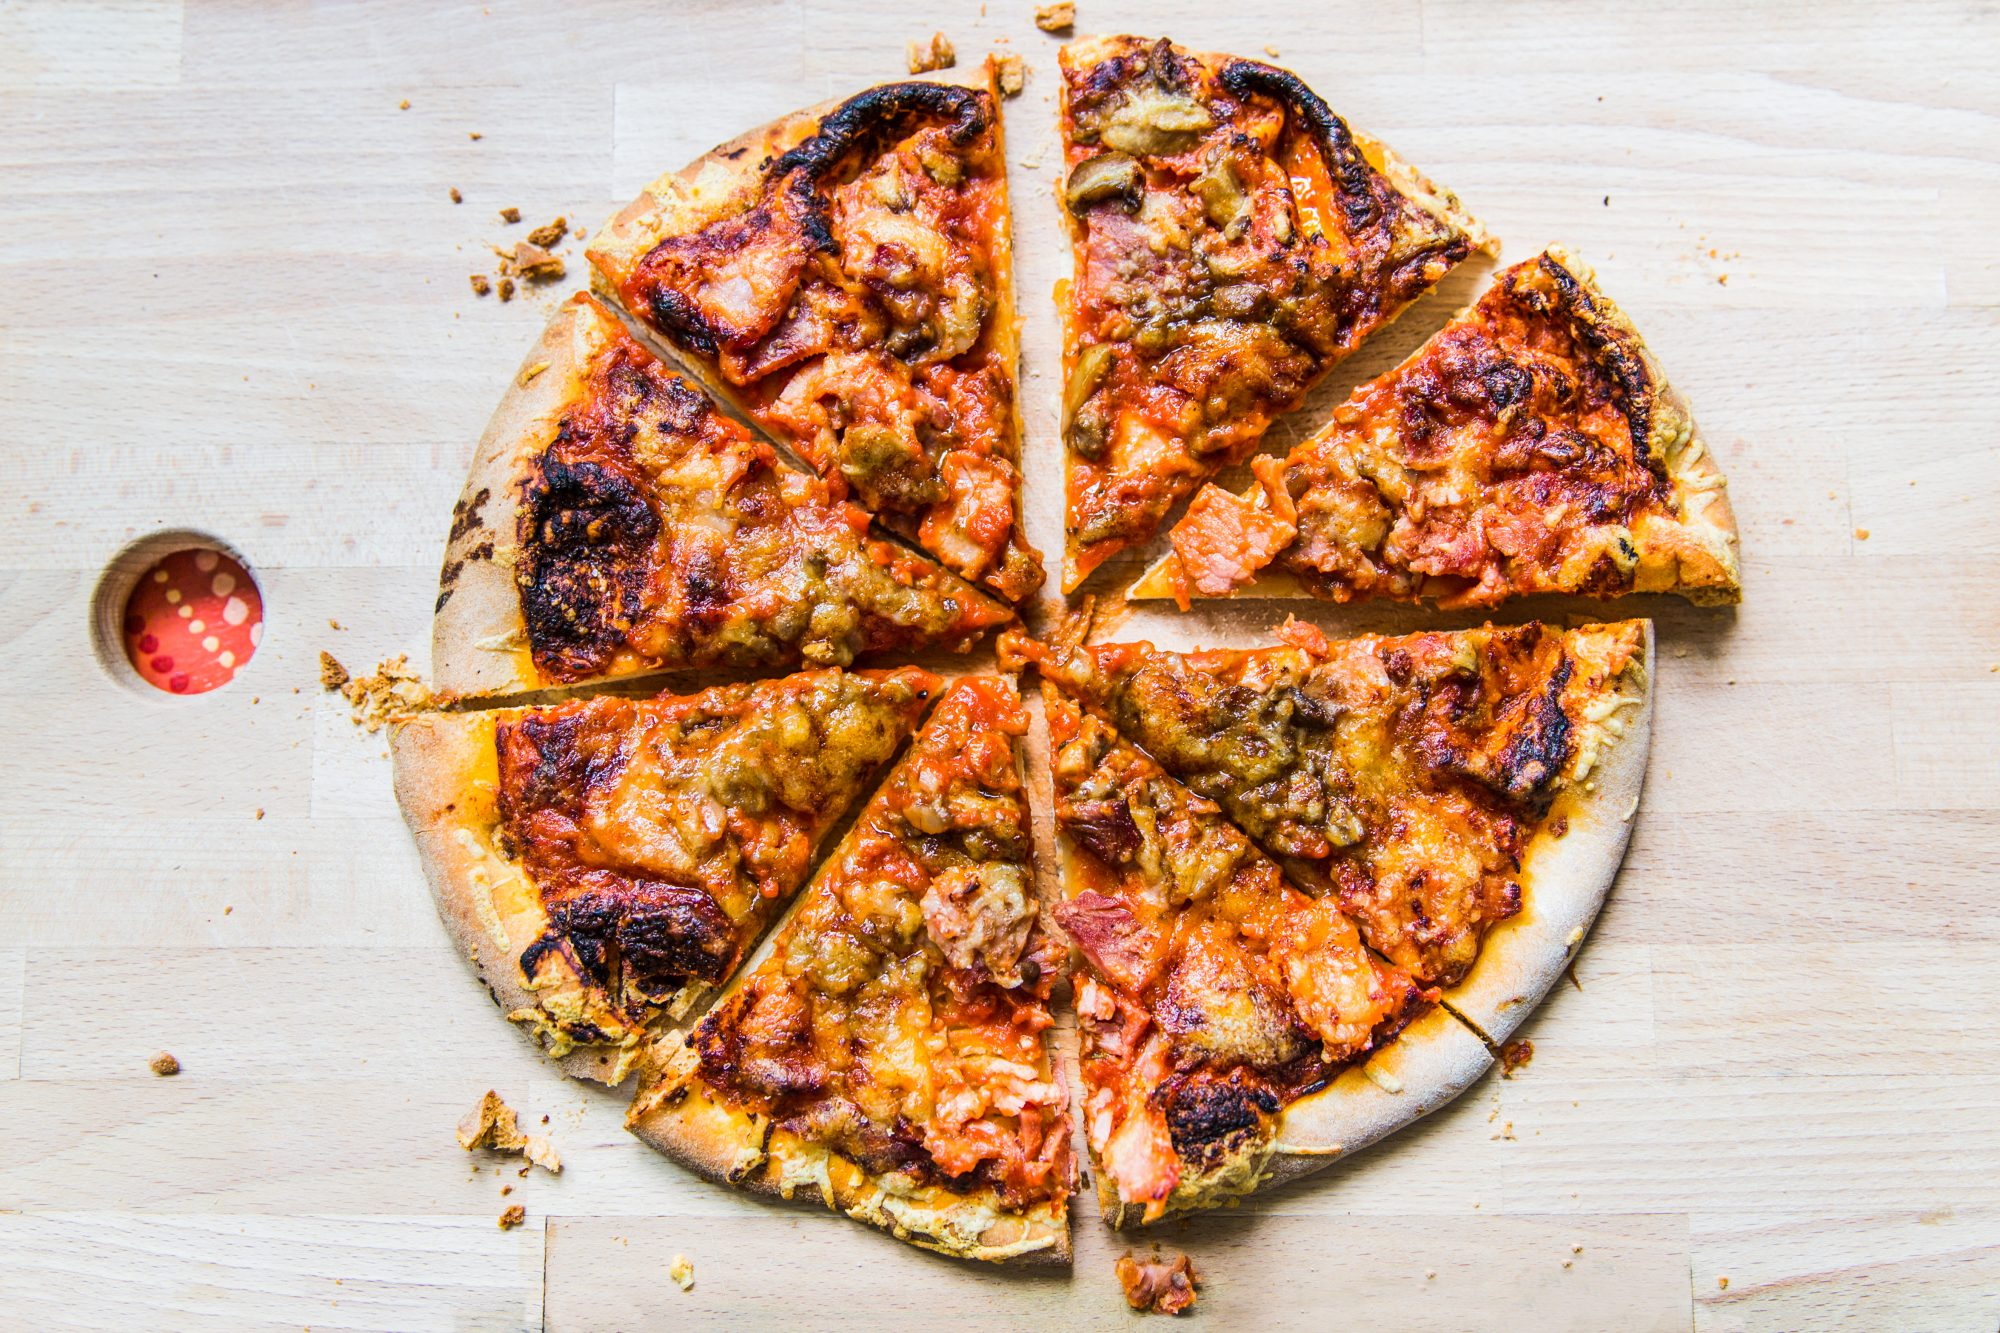 Grilled-Pizza-FT-2.jpg